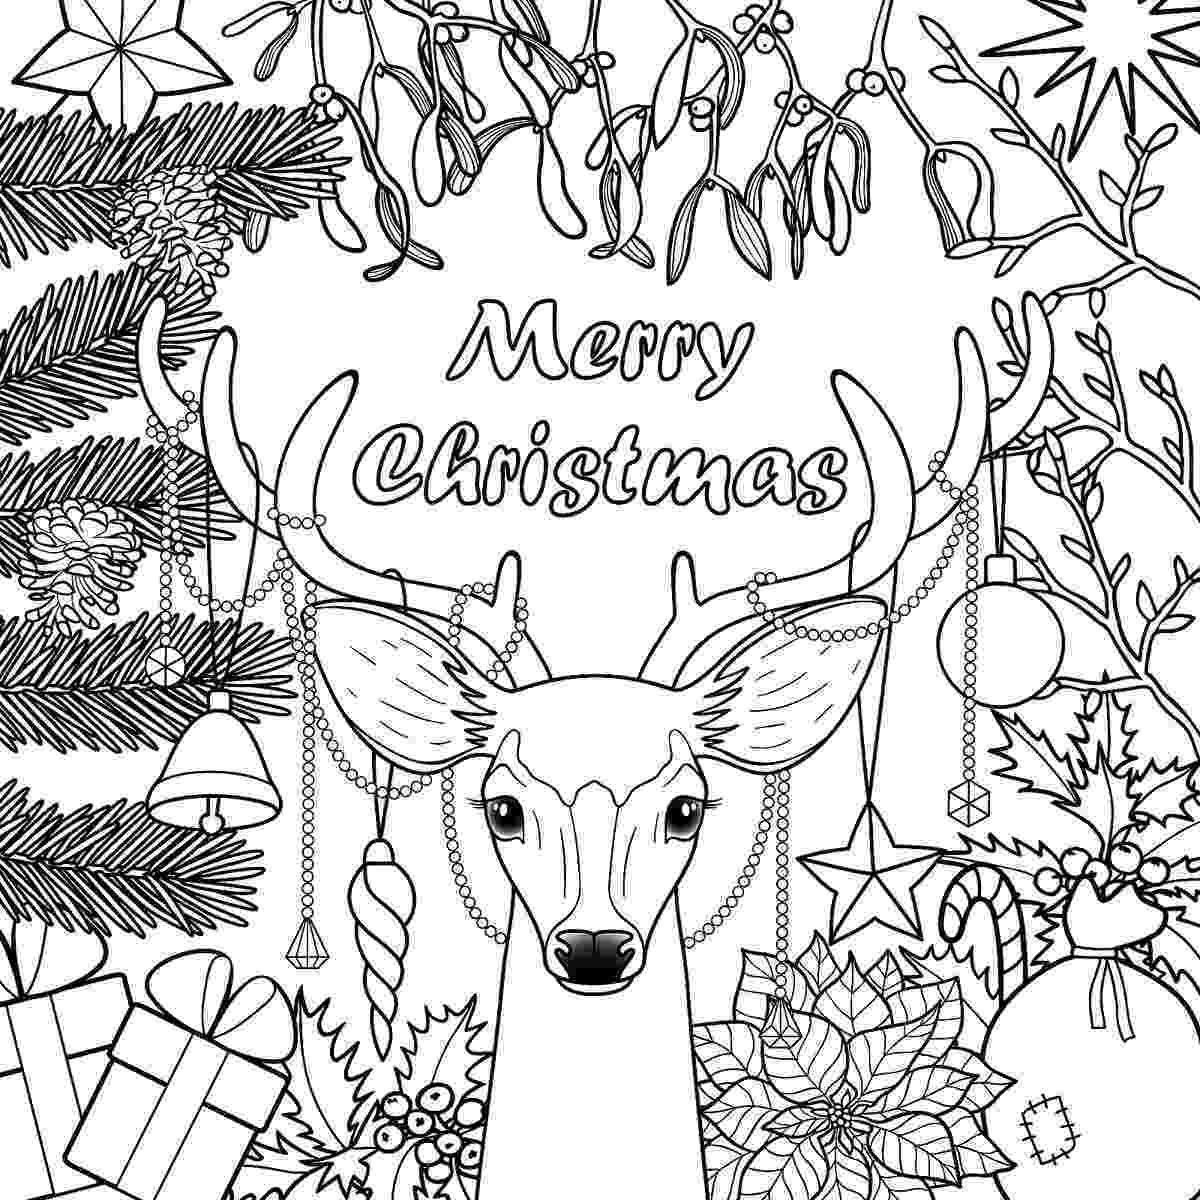 holiday pictures to color christmas coloring pages for kids adults 16 free color to holiday pictures